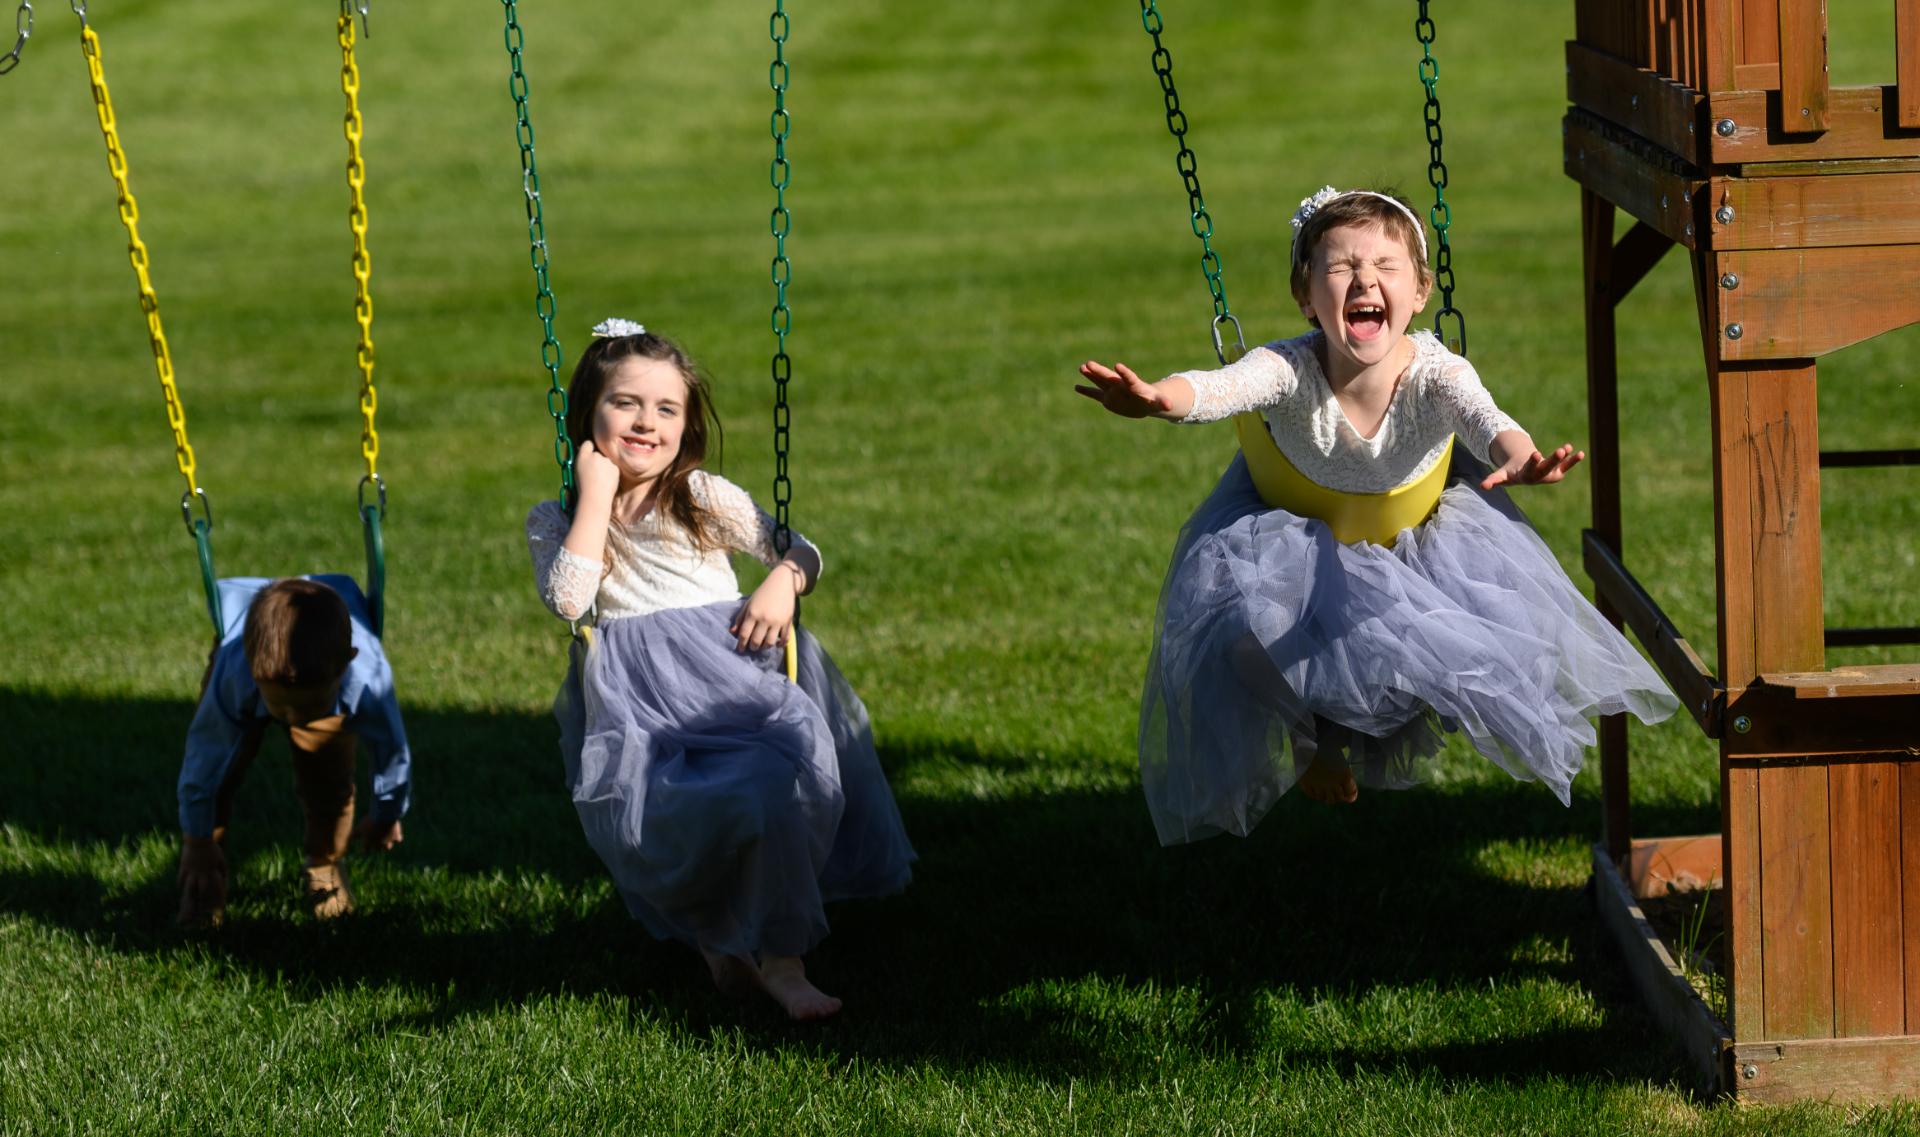 Leorah and her siblings play on their swingset, with Lenorah and her younger brother swinging while laying on their stomachs. Her brother is a young white boy, younger than his sisters, and is wearing a blue button-up and brown slacks. Her sister is a young white girl with brown hair, and is wearing a dress made of lace at the top and light blue tulle at the bottom.